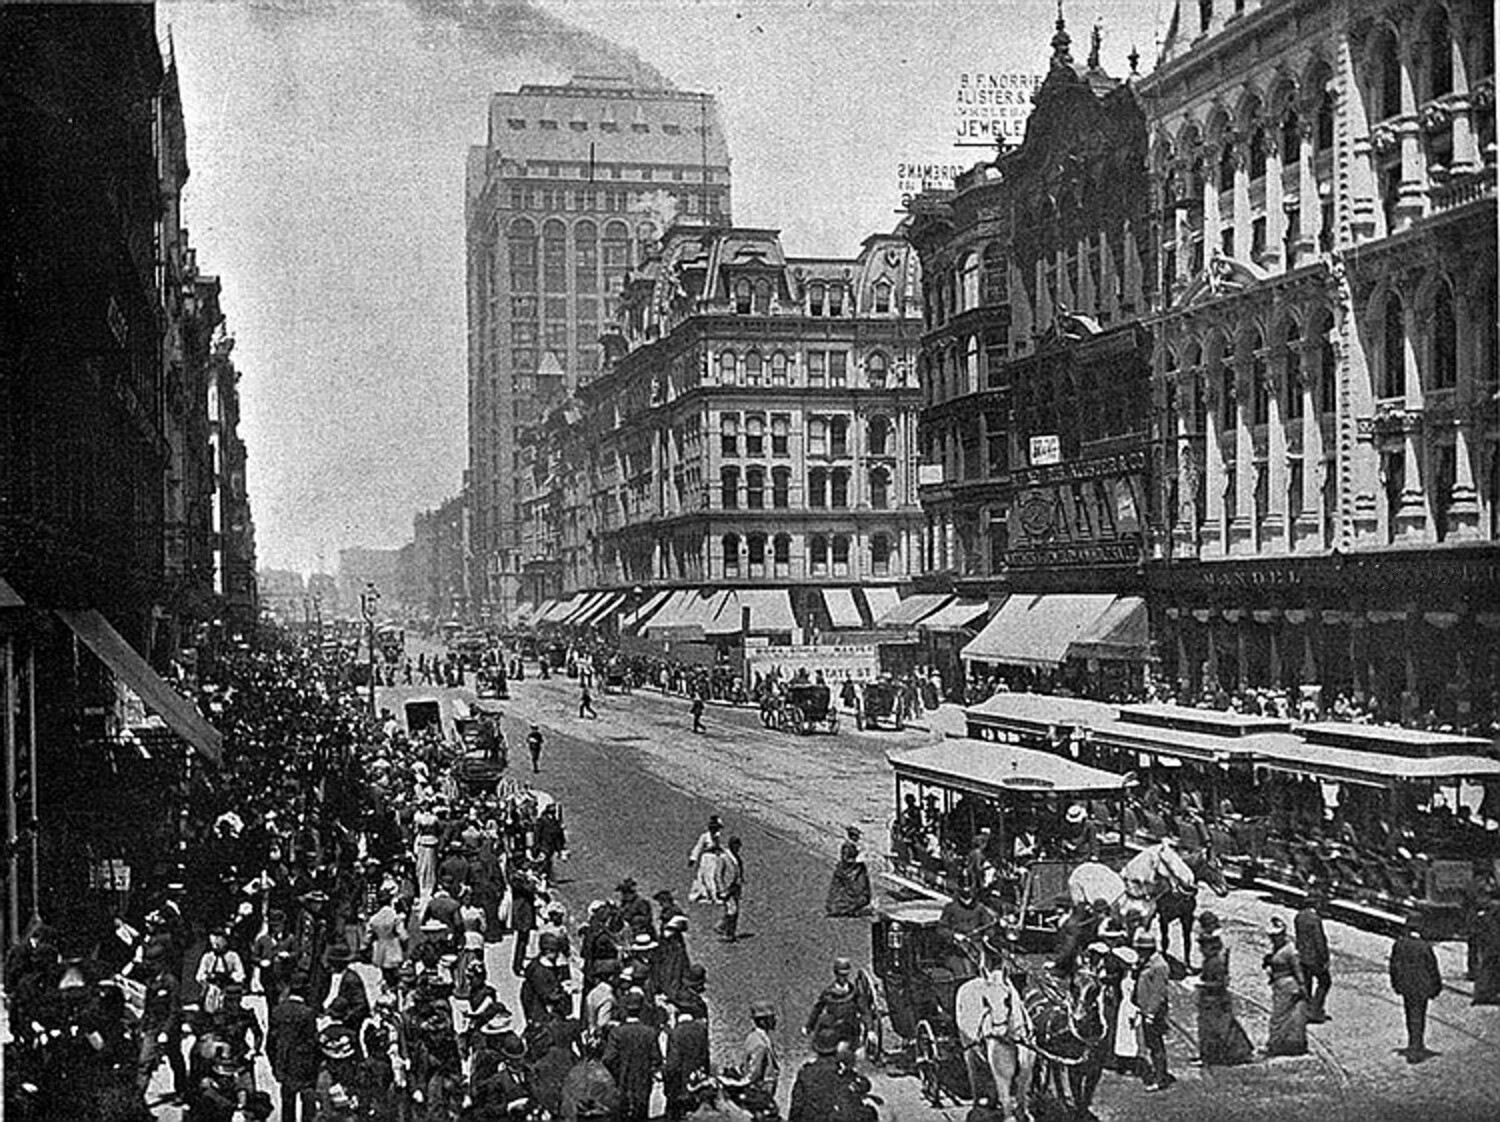 image shows chicago in 1886